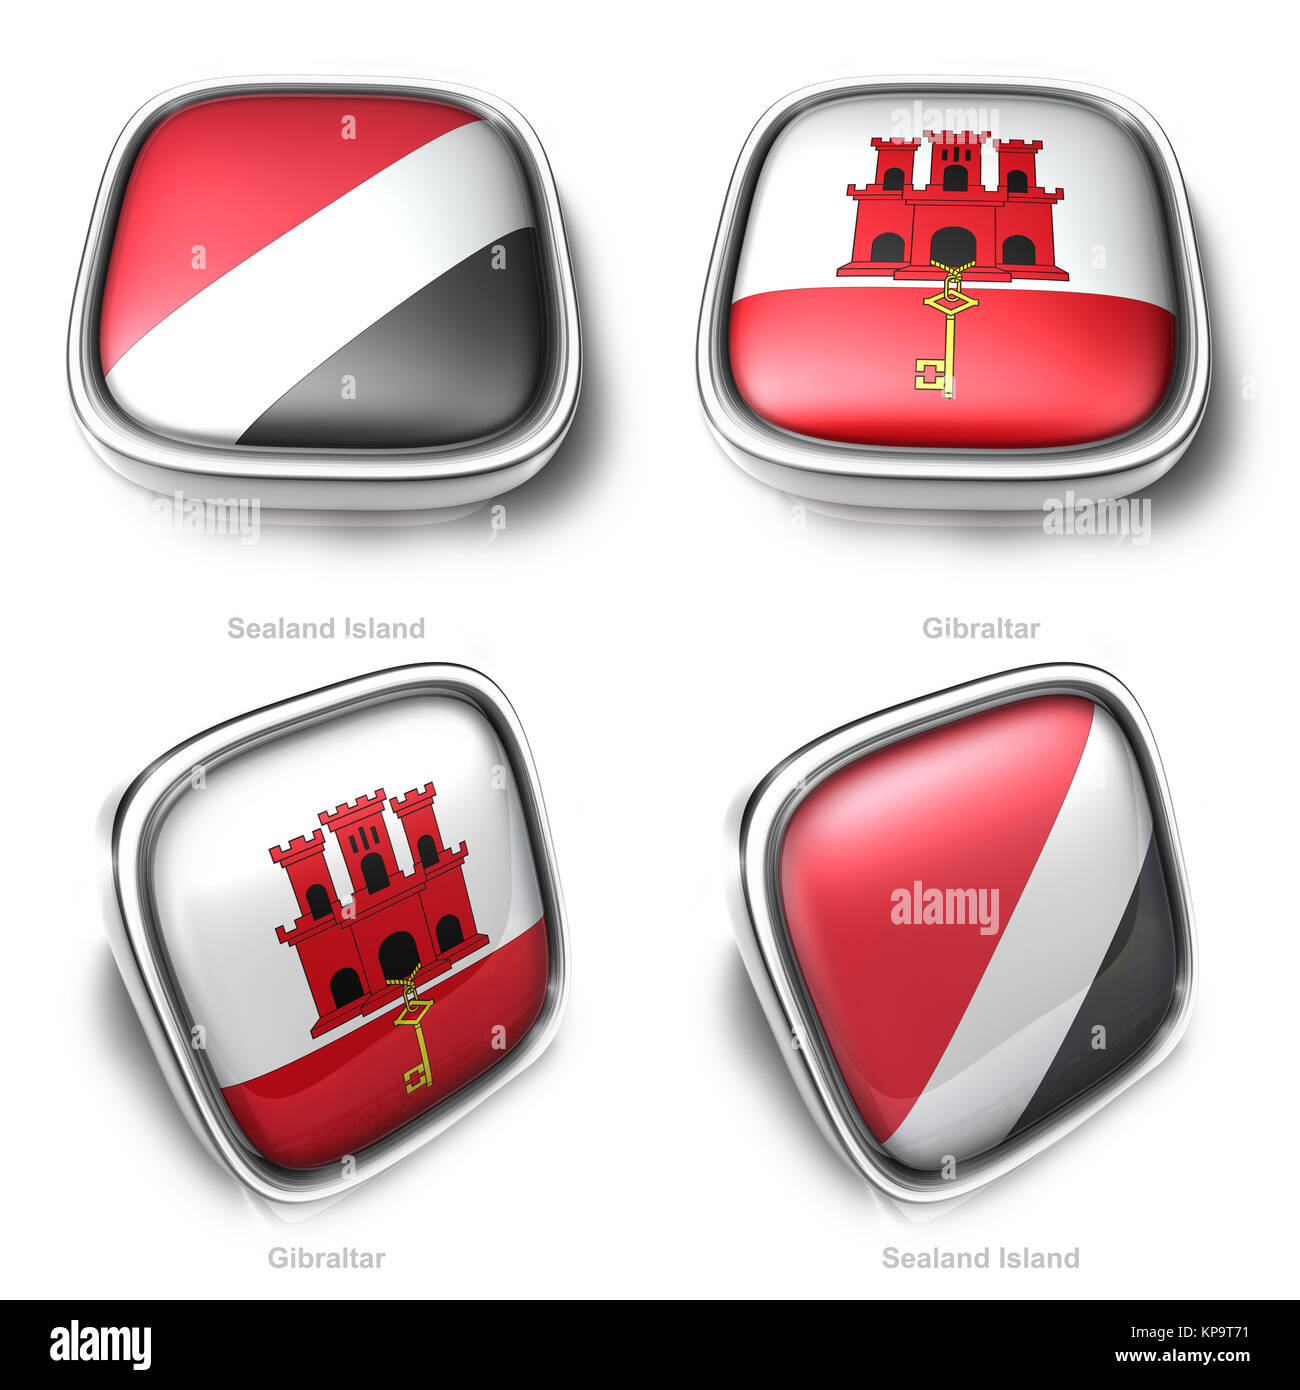 Sealand Island and Gibraltar 3d metallic square flag button - Stock Image